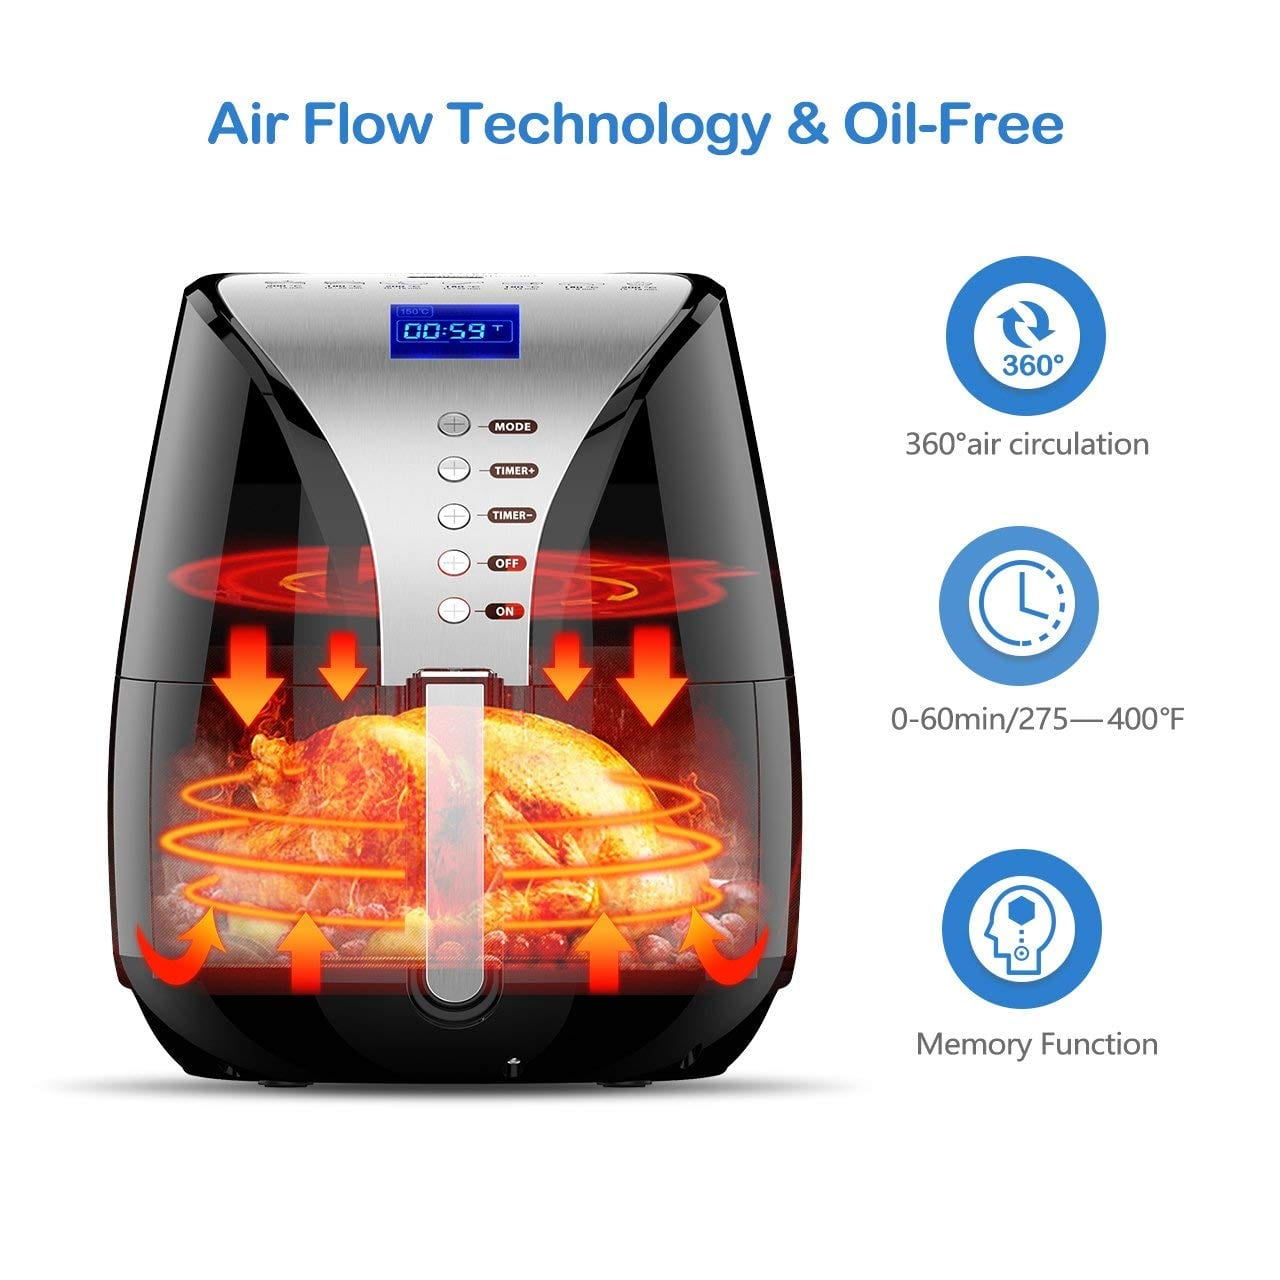 Air Fryer; Harbor 3.8 Qt 7-in-1 Oilless Air Deep Fryer Cookers with Detachable Basket, Time and Temperature Control, LCD Screen